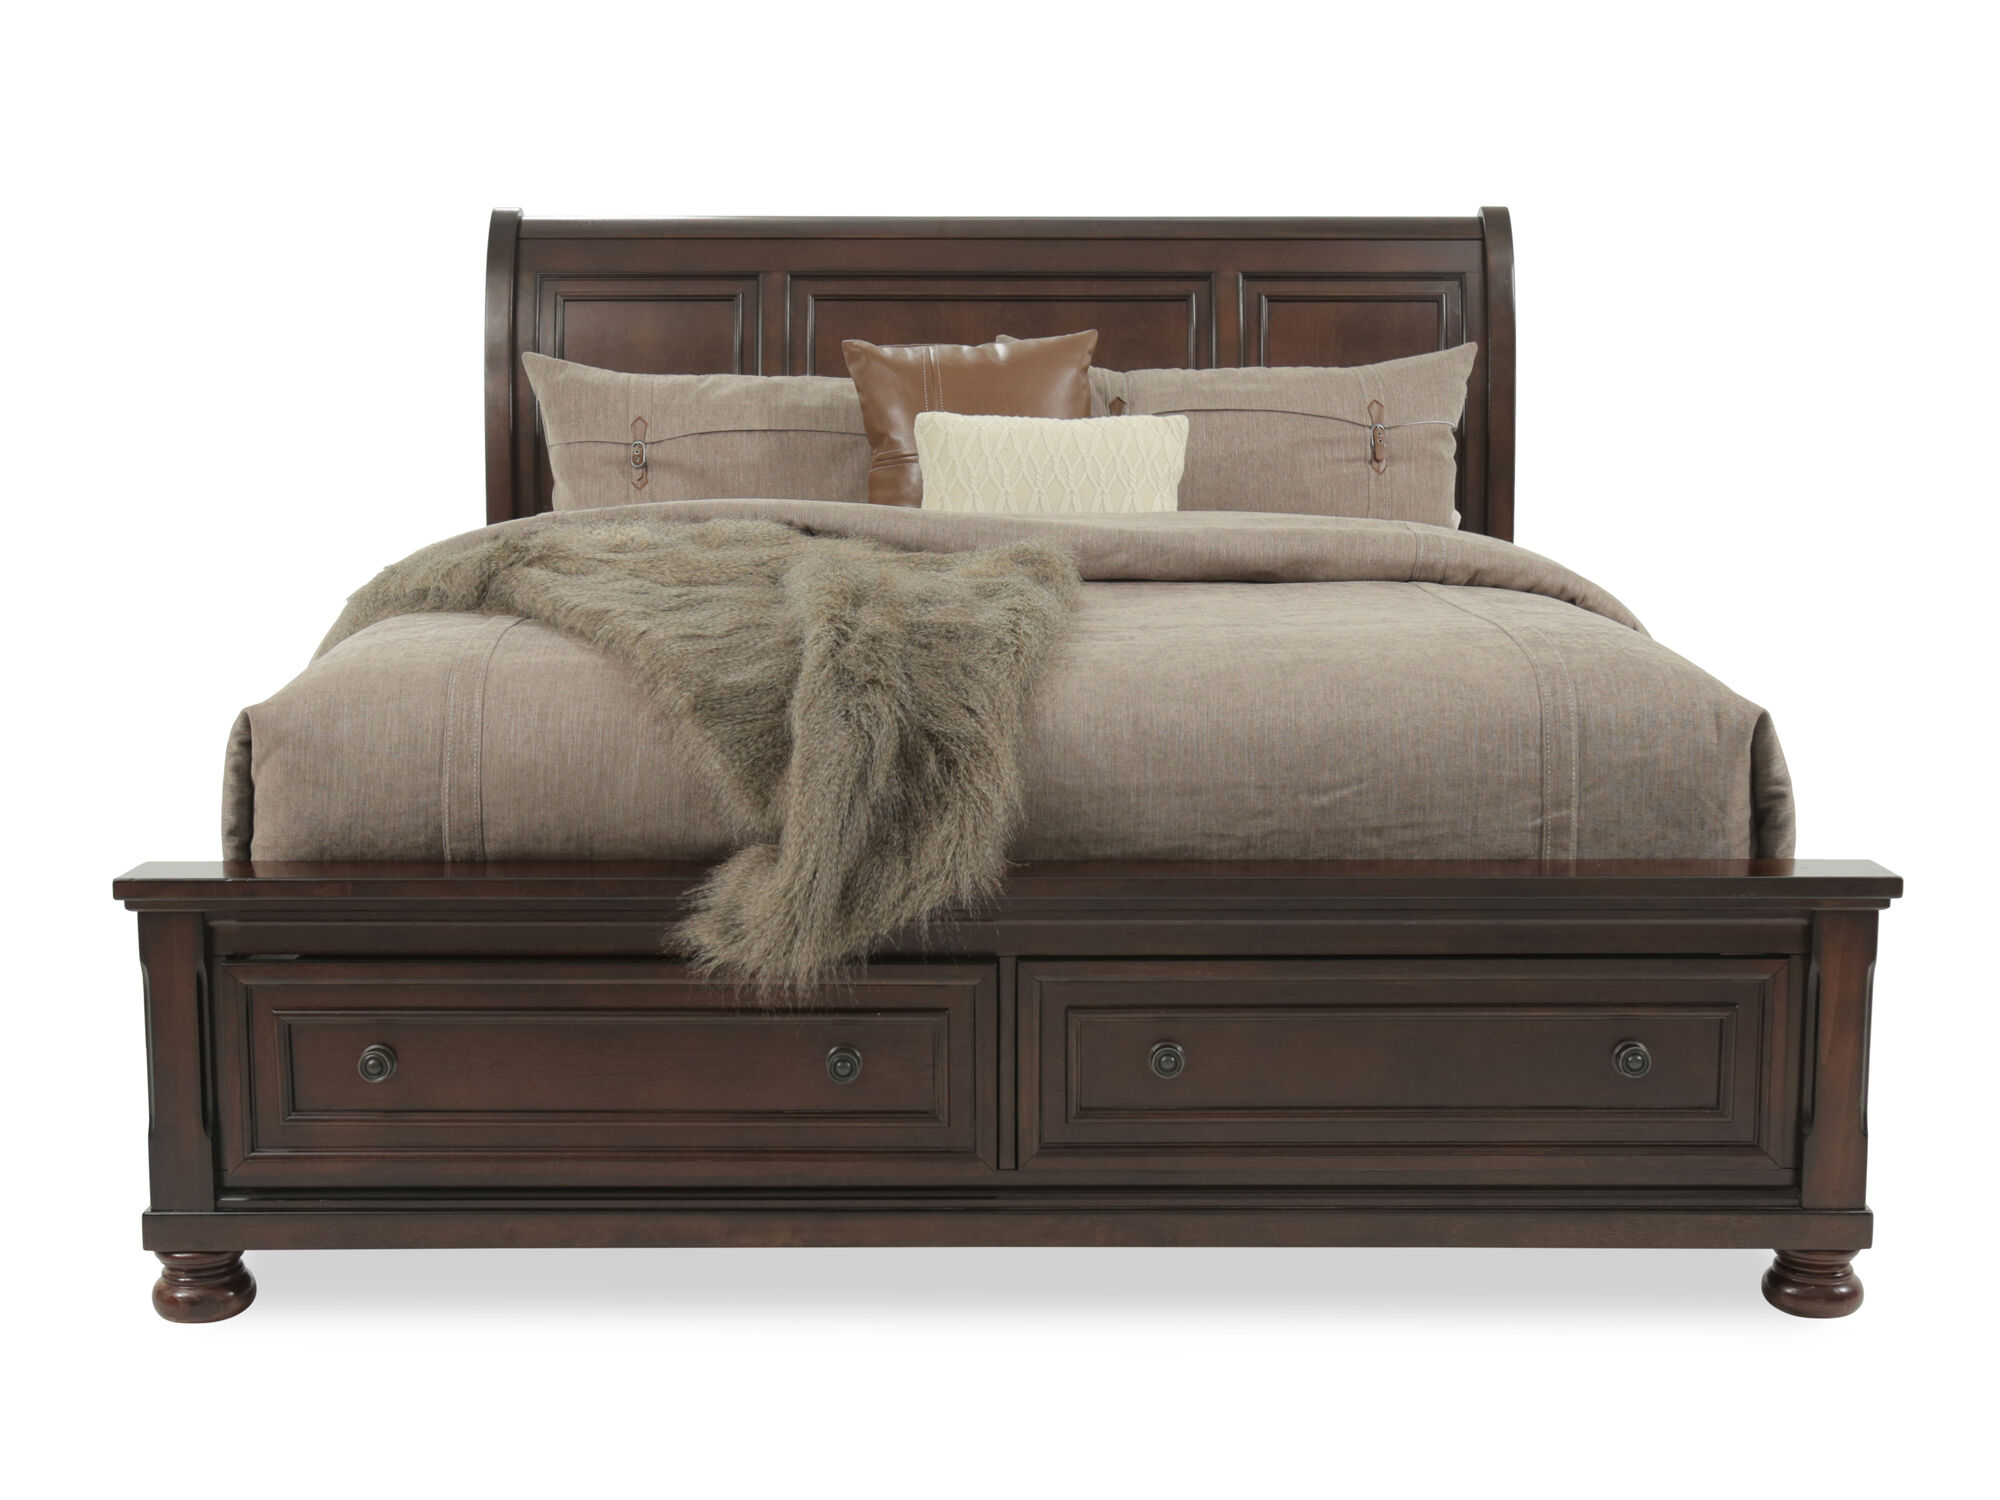 ashley 57u0026quot vintage beveled storage casual sleigh bed in rustic brown